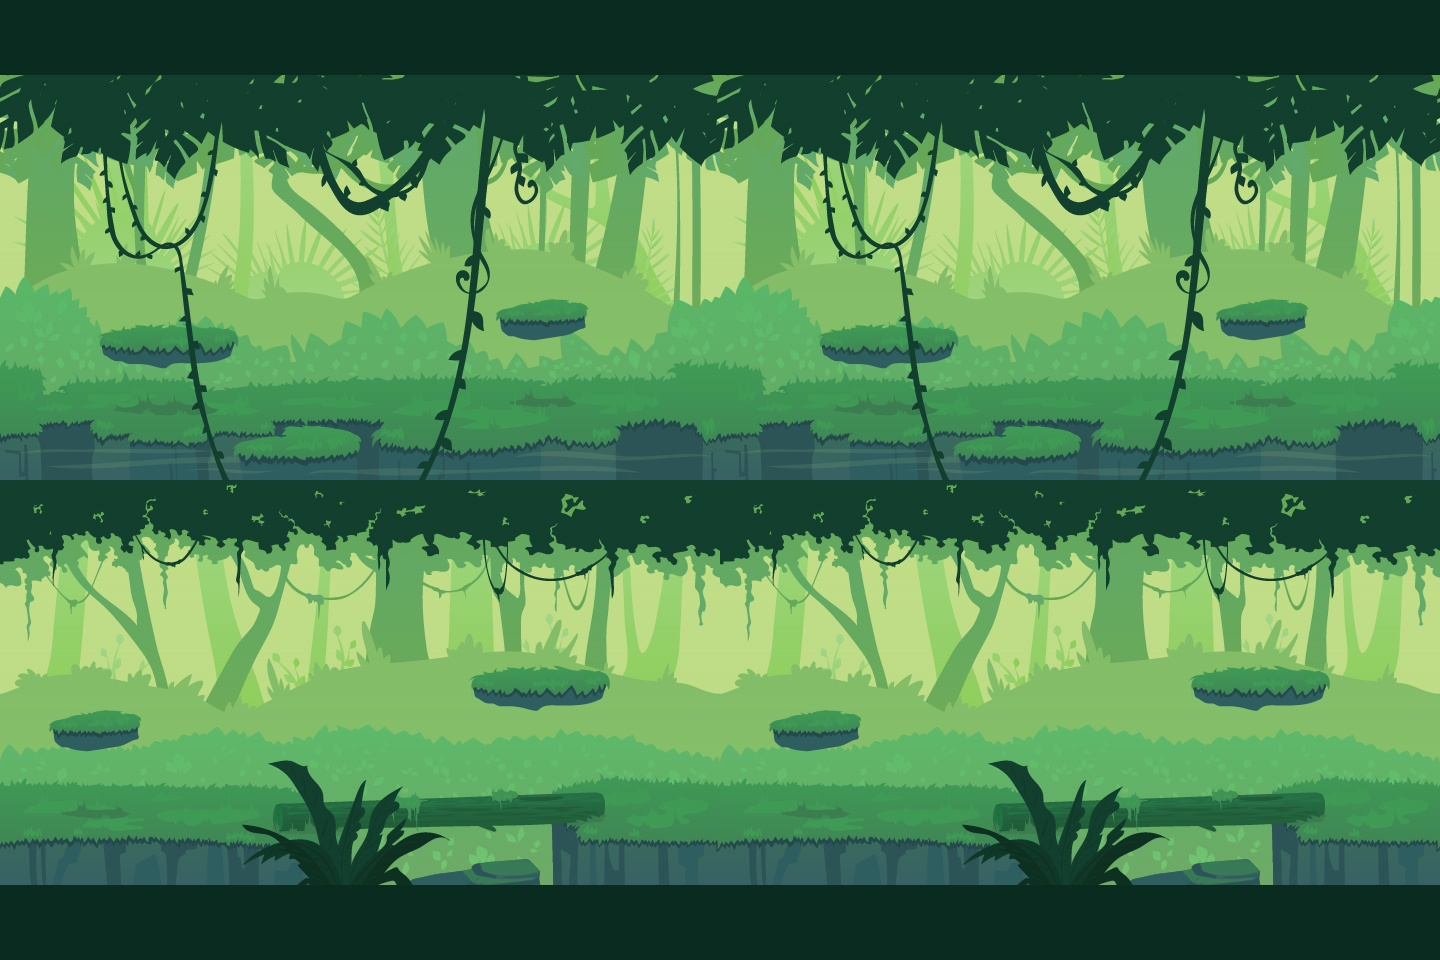 jungle 2d game backgrounds - craftpix